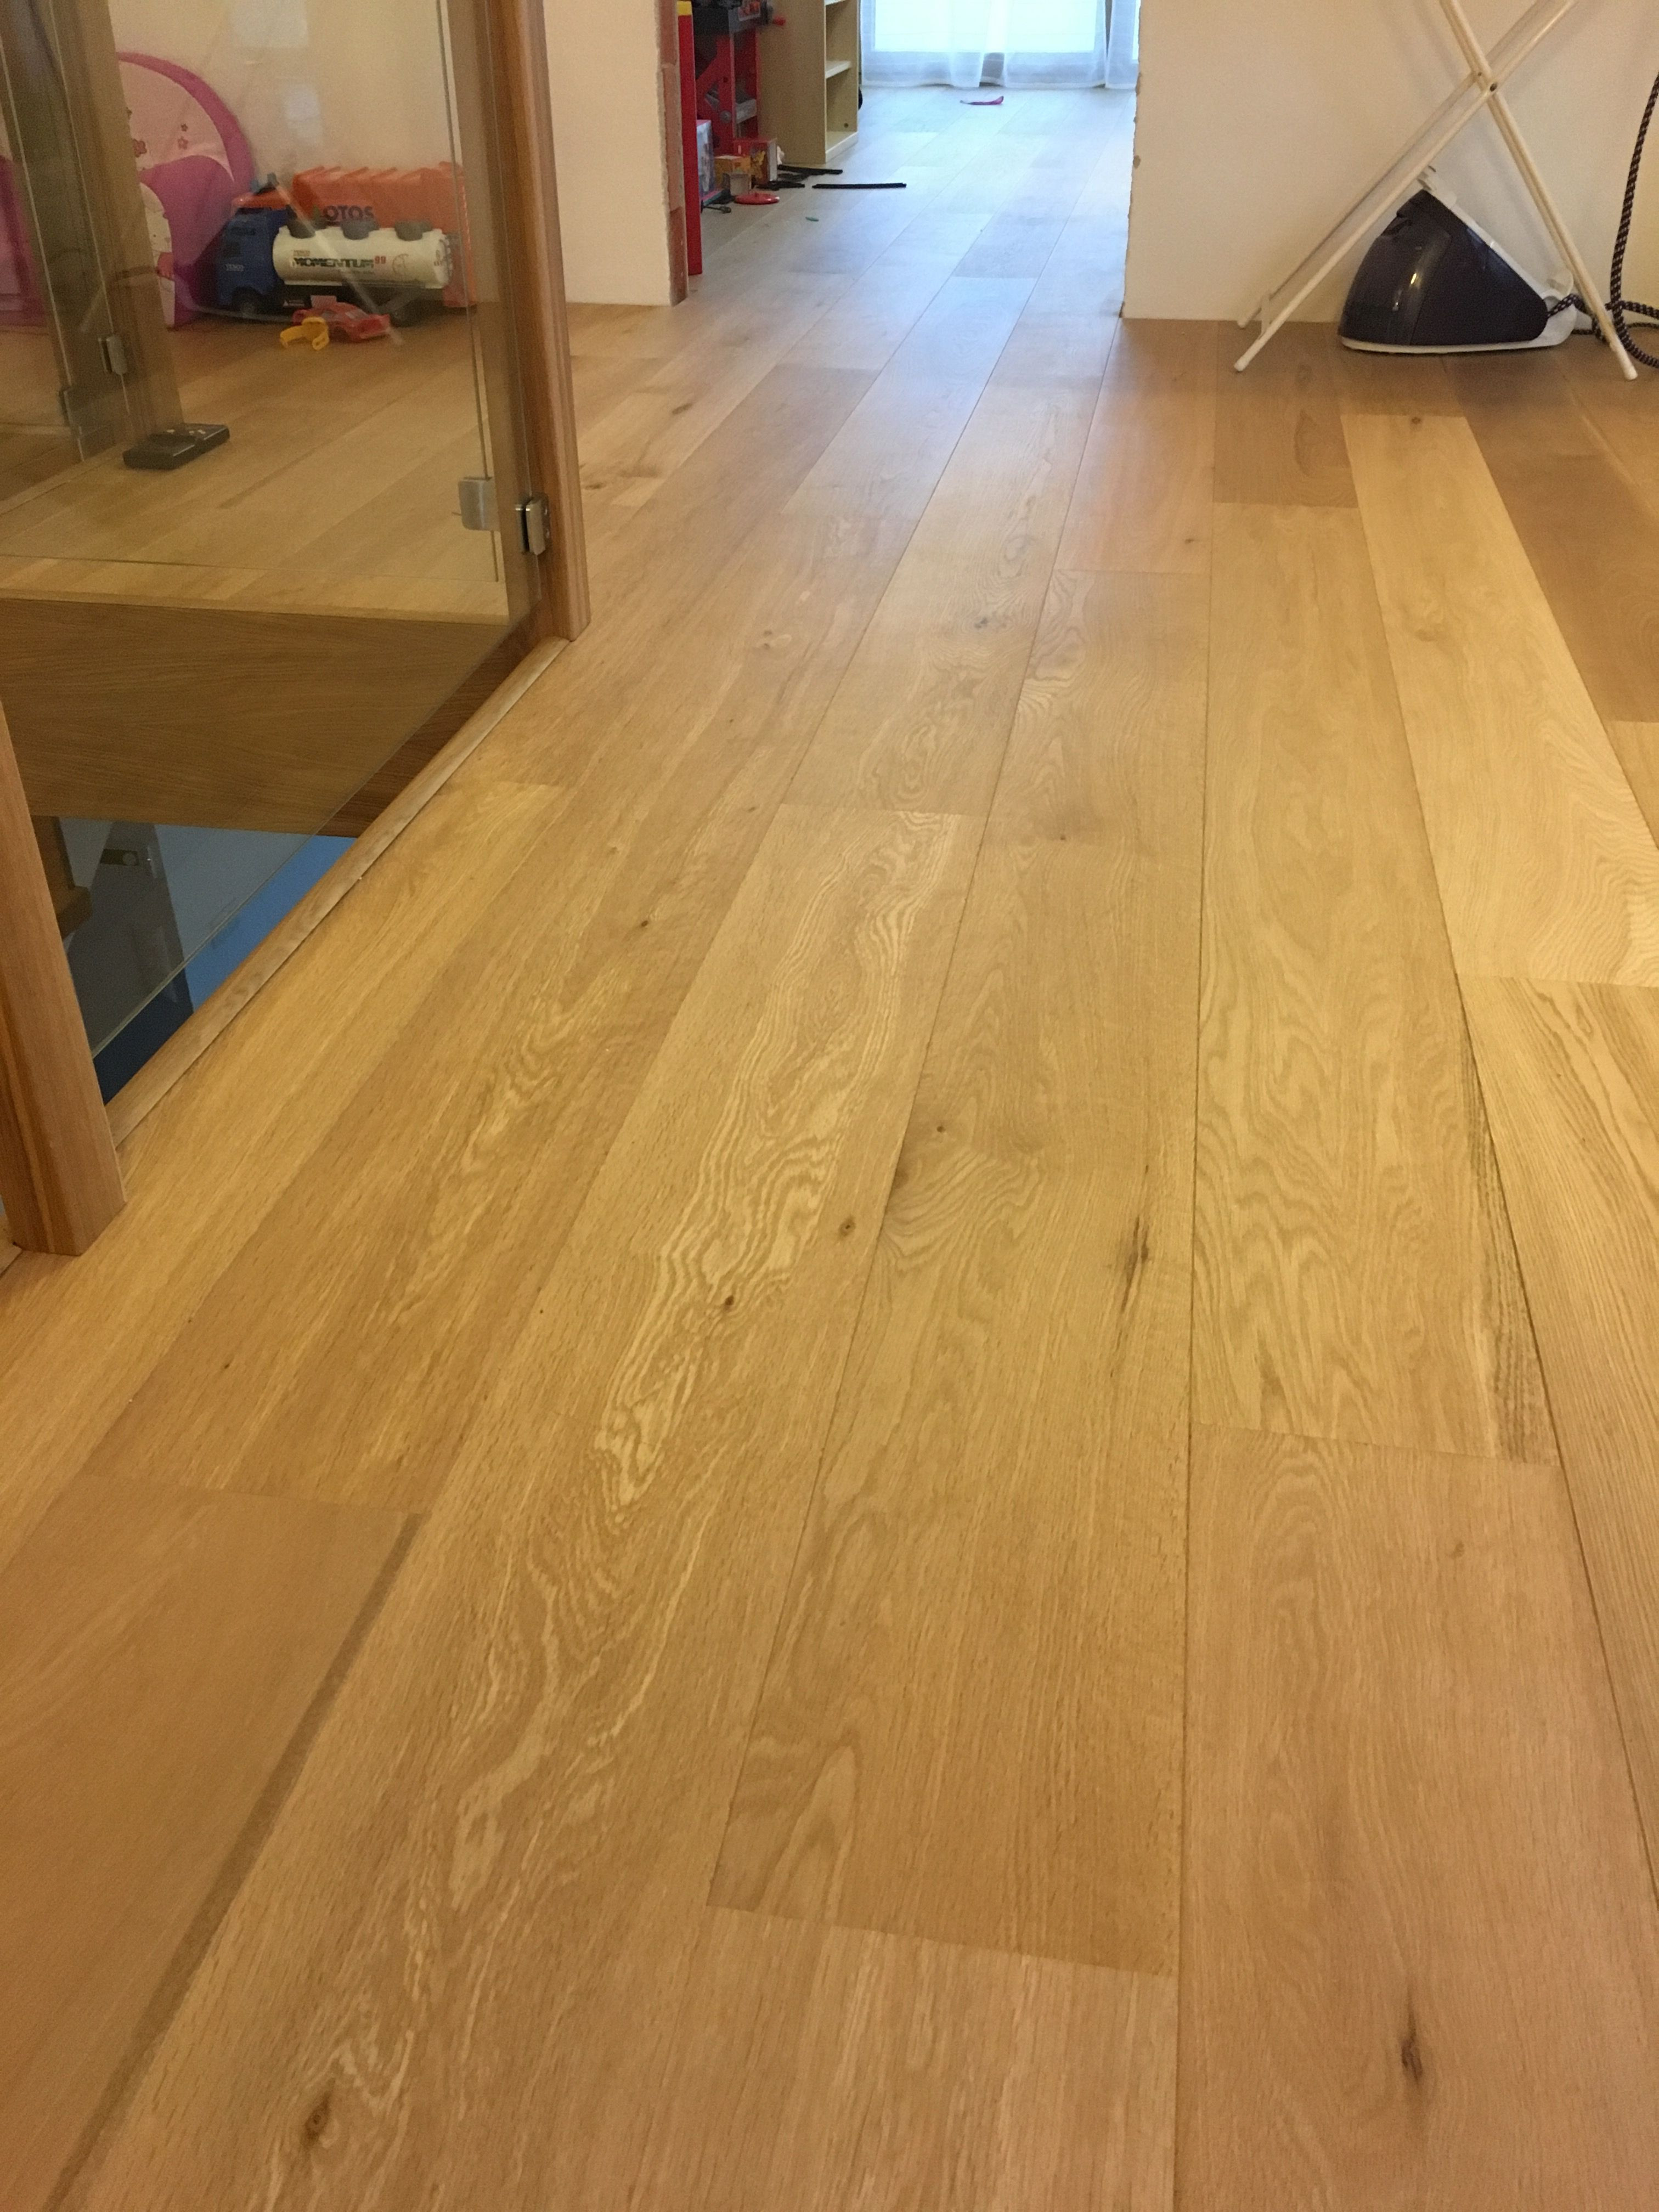 refinishing hardwood floors in sections of how to stain wood floors naturalny dub od belgickaho va½robcu lamett for how to stain wood floors naturalny dub od belgickaho va½robcu lamett